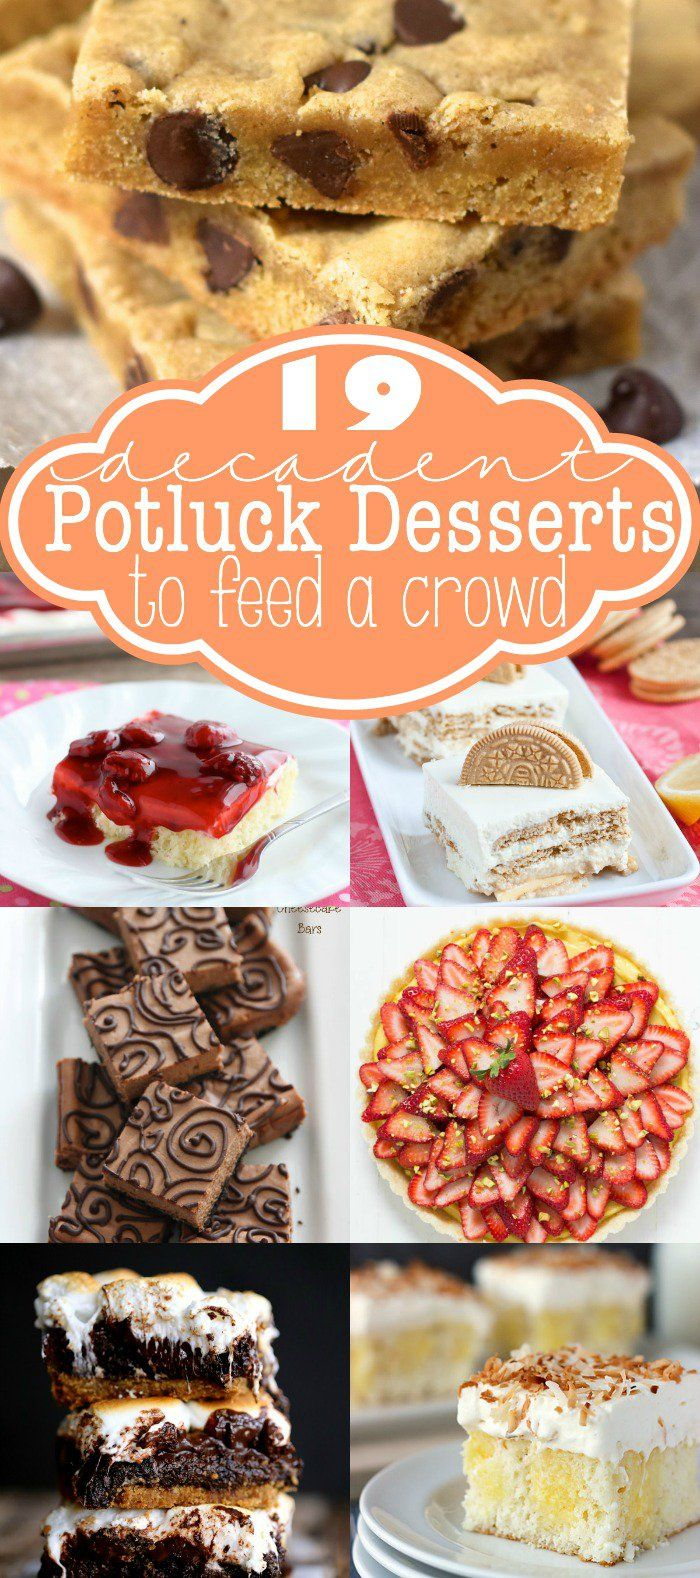 19 Decadent Potluck Desserts to Feed a Crowd